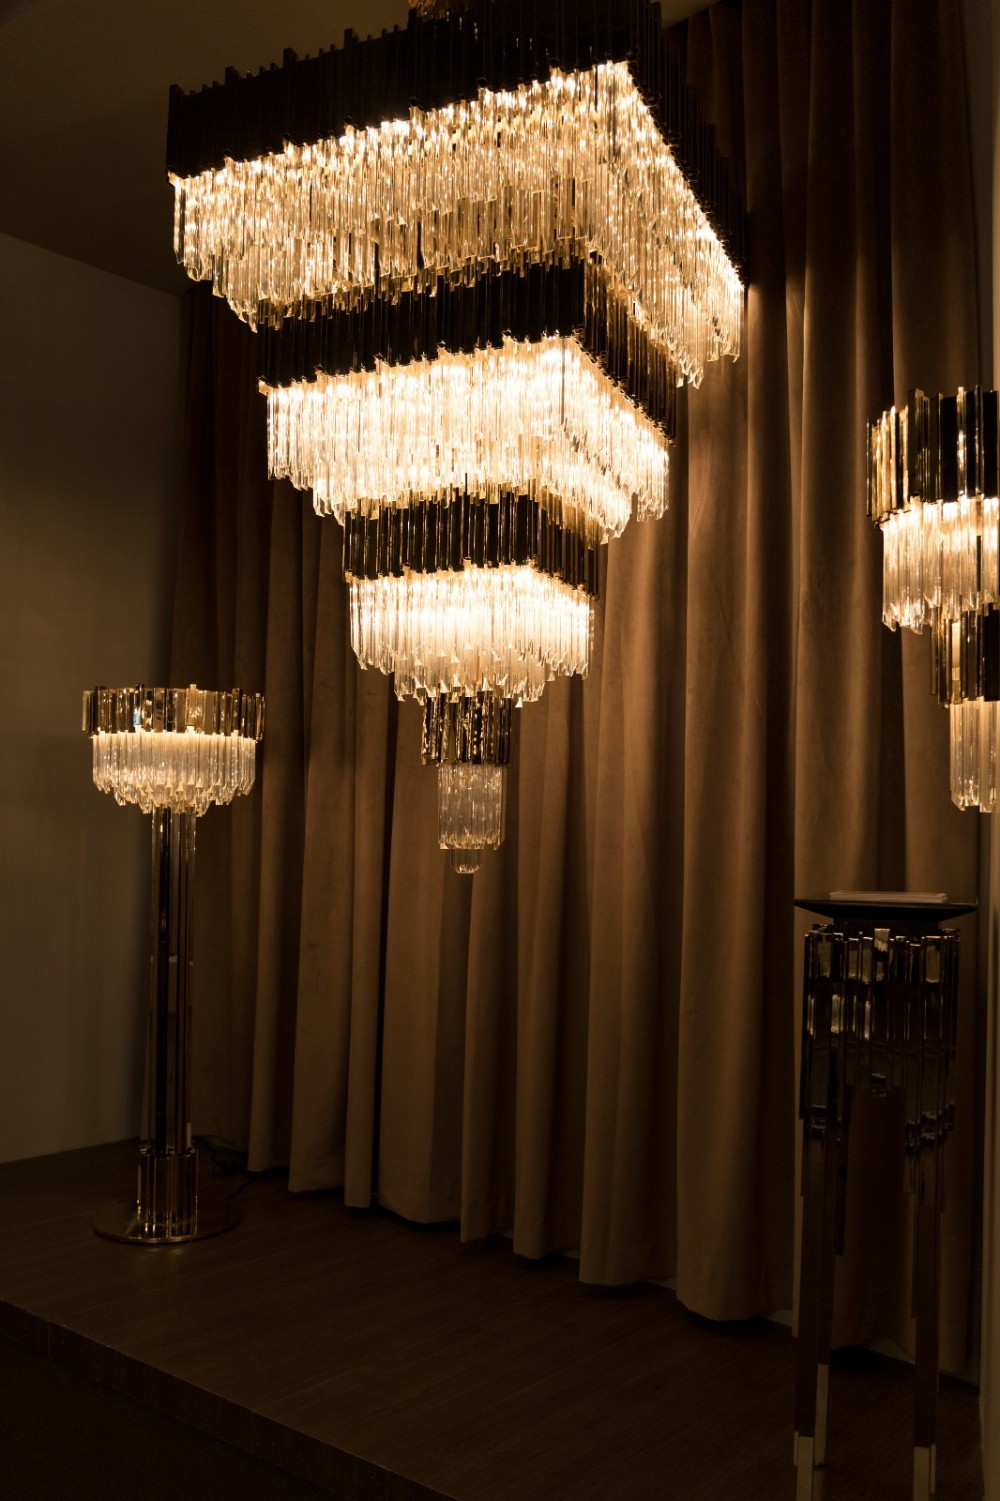 Discover LUXXU's New Lighting Designs At iSaloni 2019 06 new lighting designs Discover LUXXU's New Lighting Designs At iSaloni 2019 Discover LUXXUs New Lighting Designs At iSaloni 2019 06